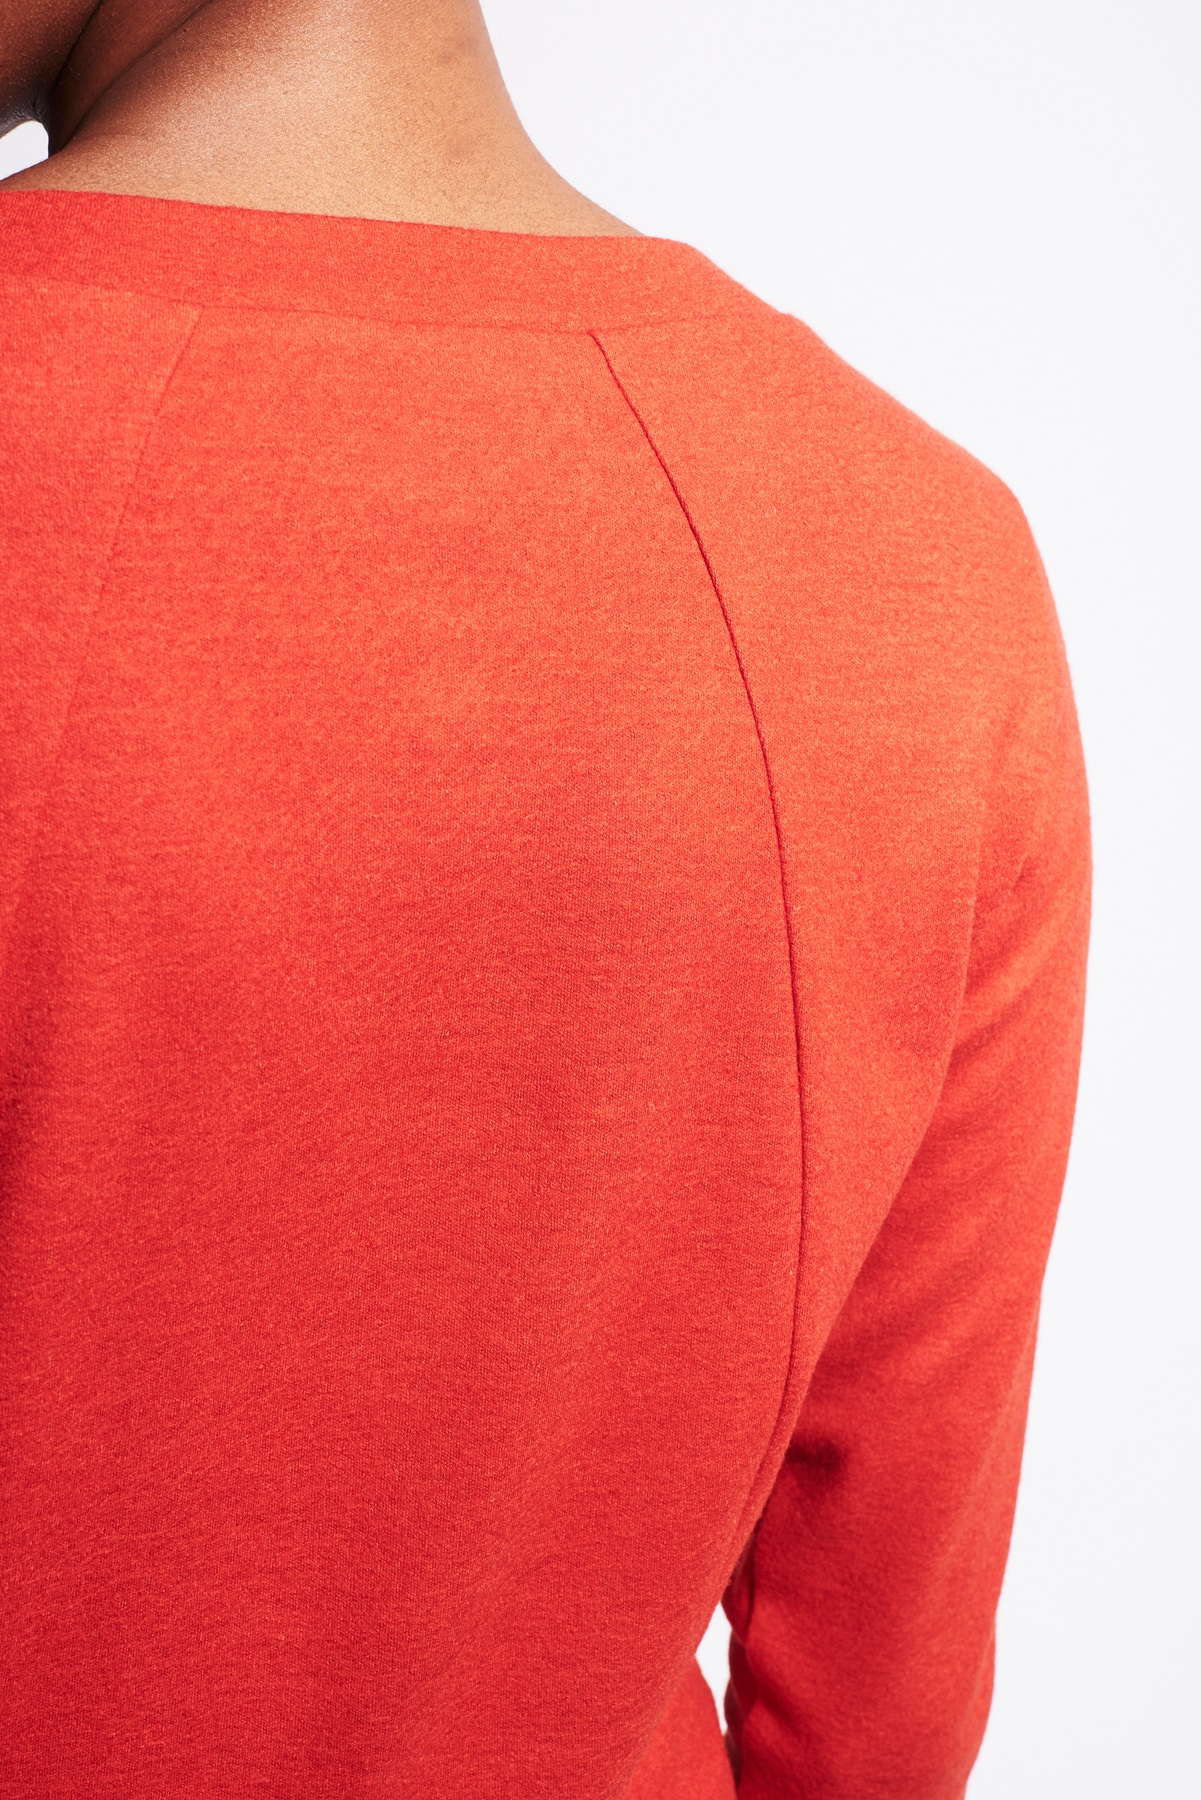 Pulli pearl orange (4)